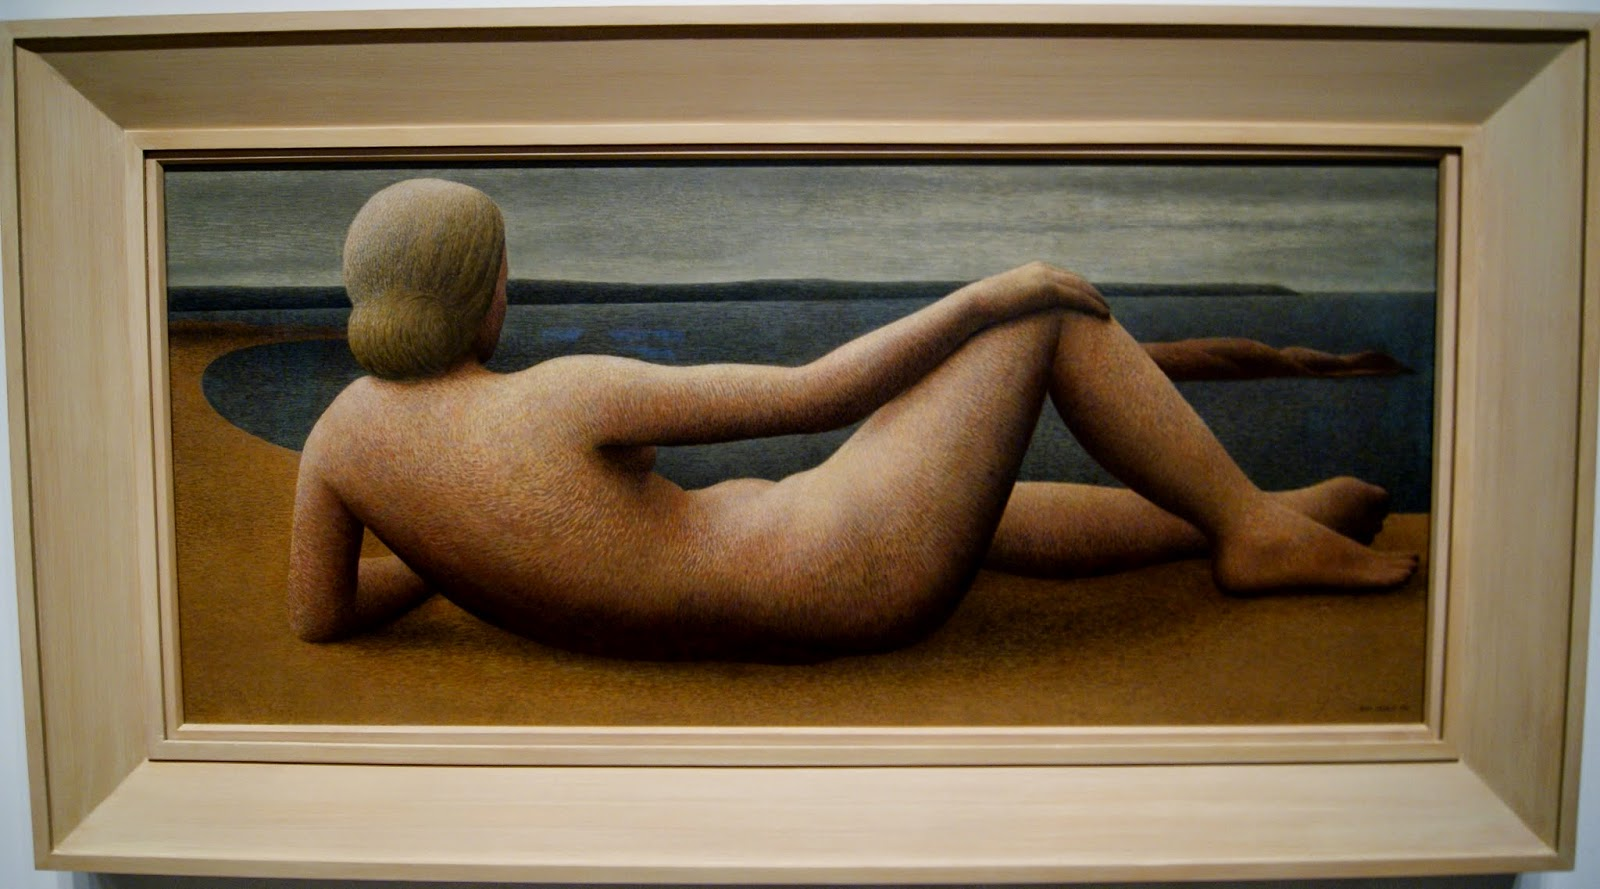 Alex Colville Exhibit at Art Gallery of Ontario in Toronto, Coastal Figure, 1951, paintings, art, artmatters, culture,ontario, Canadian Artist, Painter, Canada